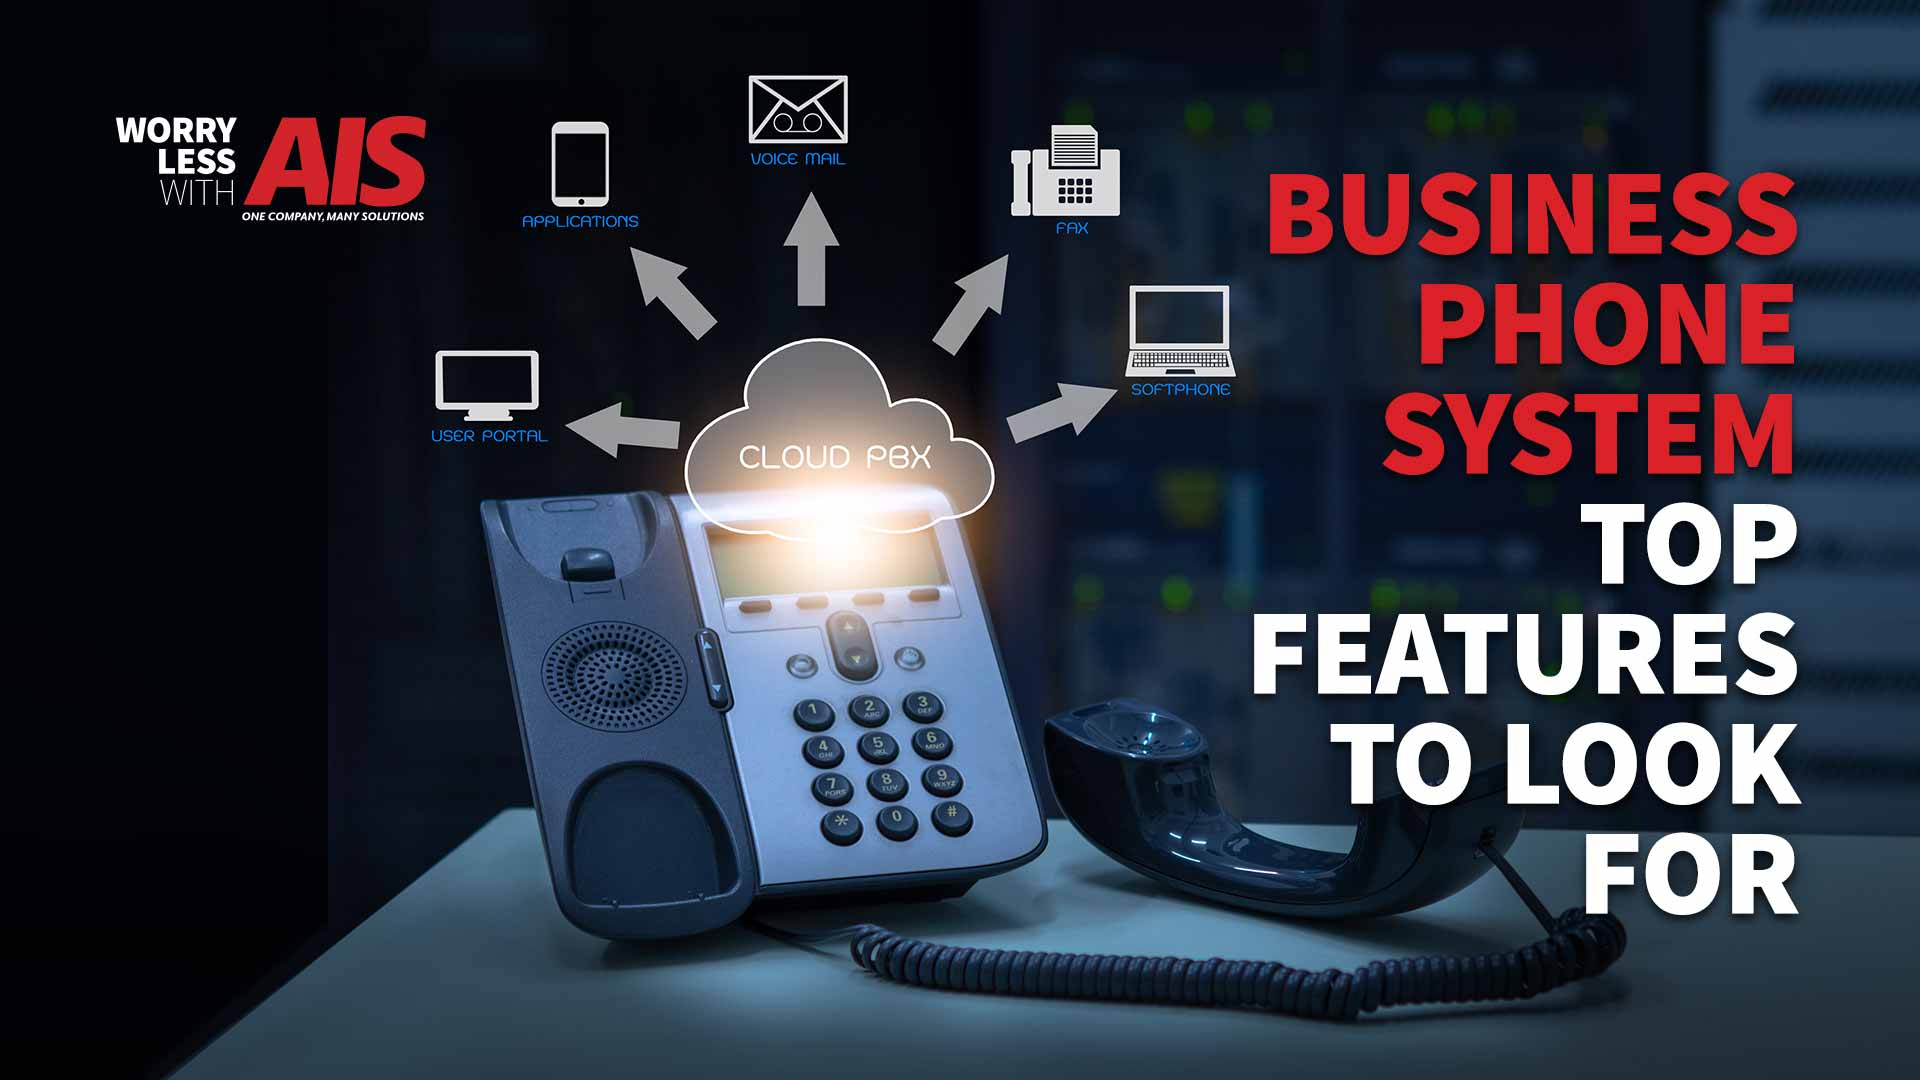 Business Phone System: Top 5 Desk Phone Features